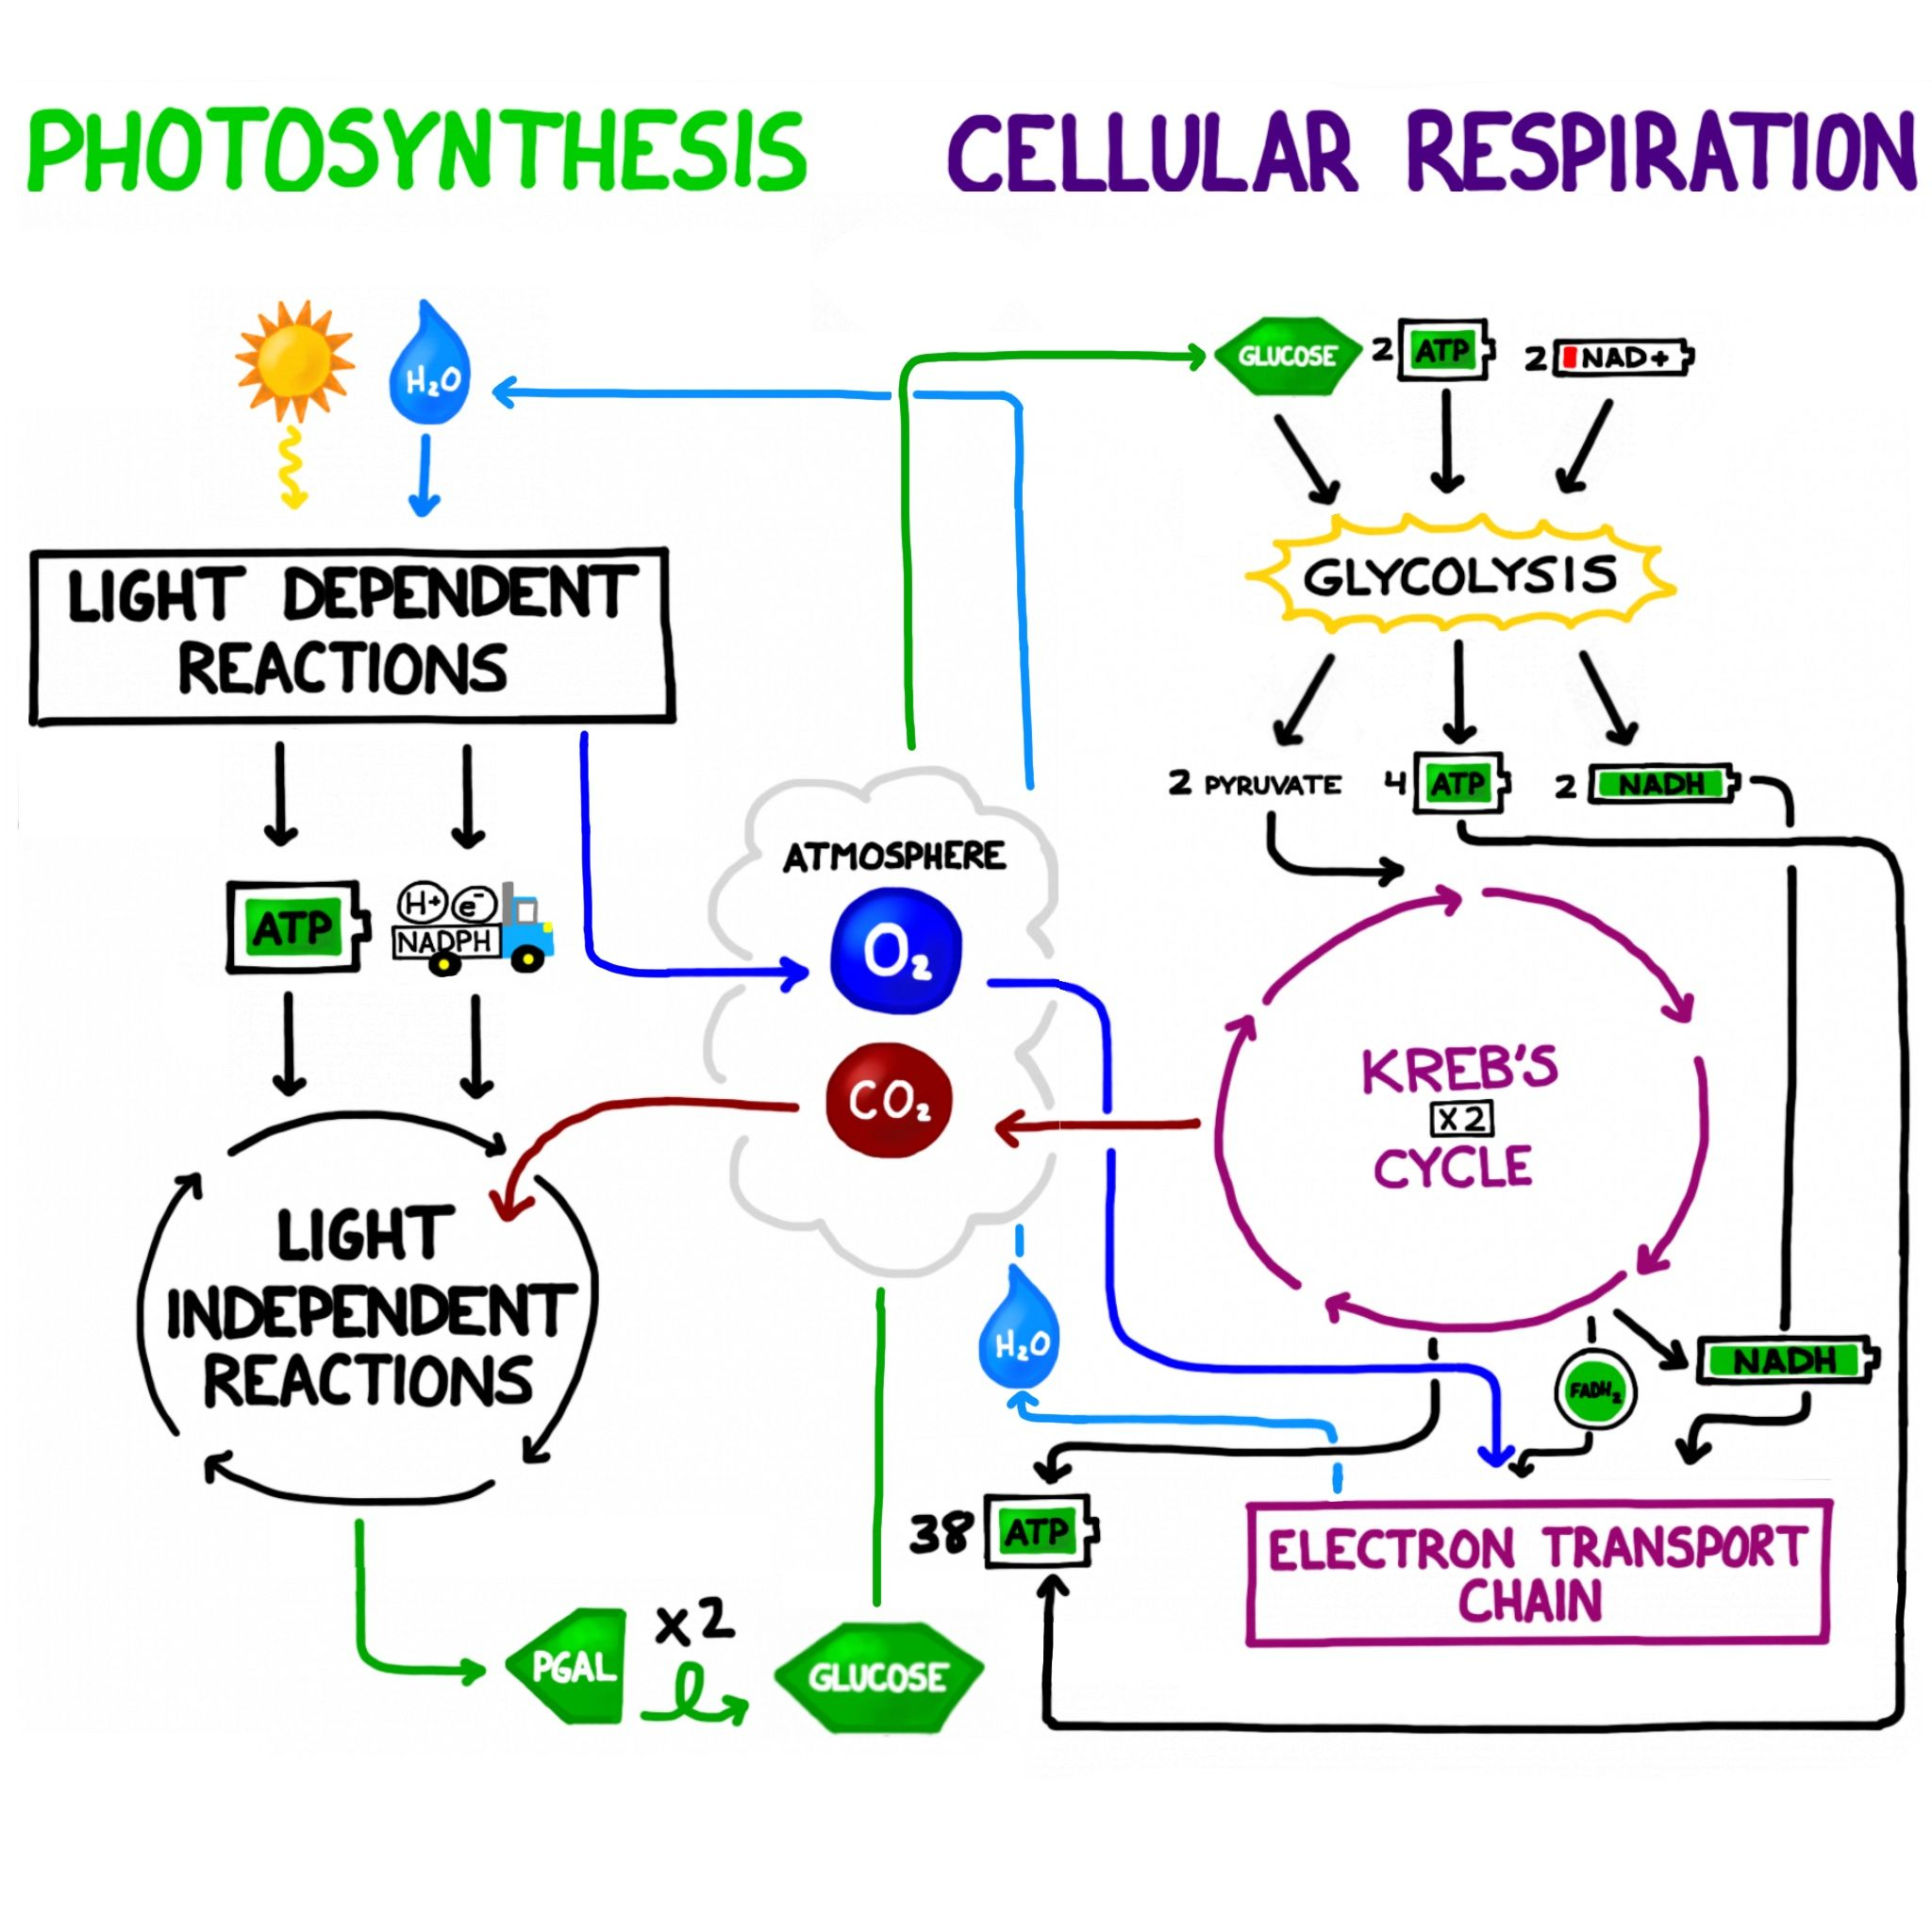 photosynthesis and cellular respiration diagram coleman mobile home furnace wiring comparison of processes